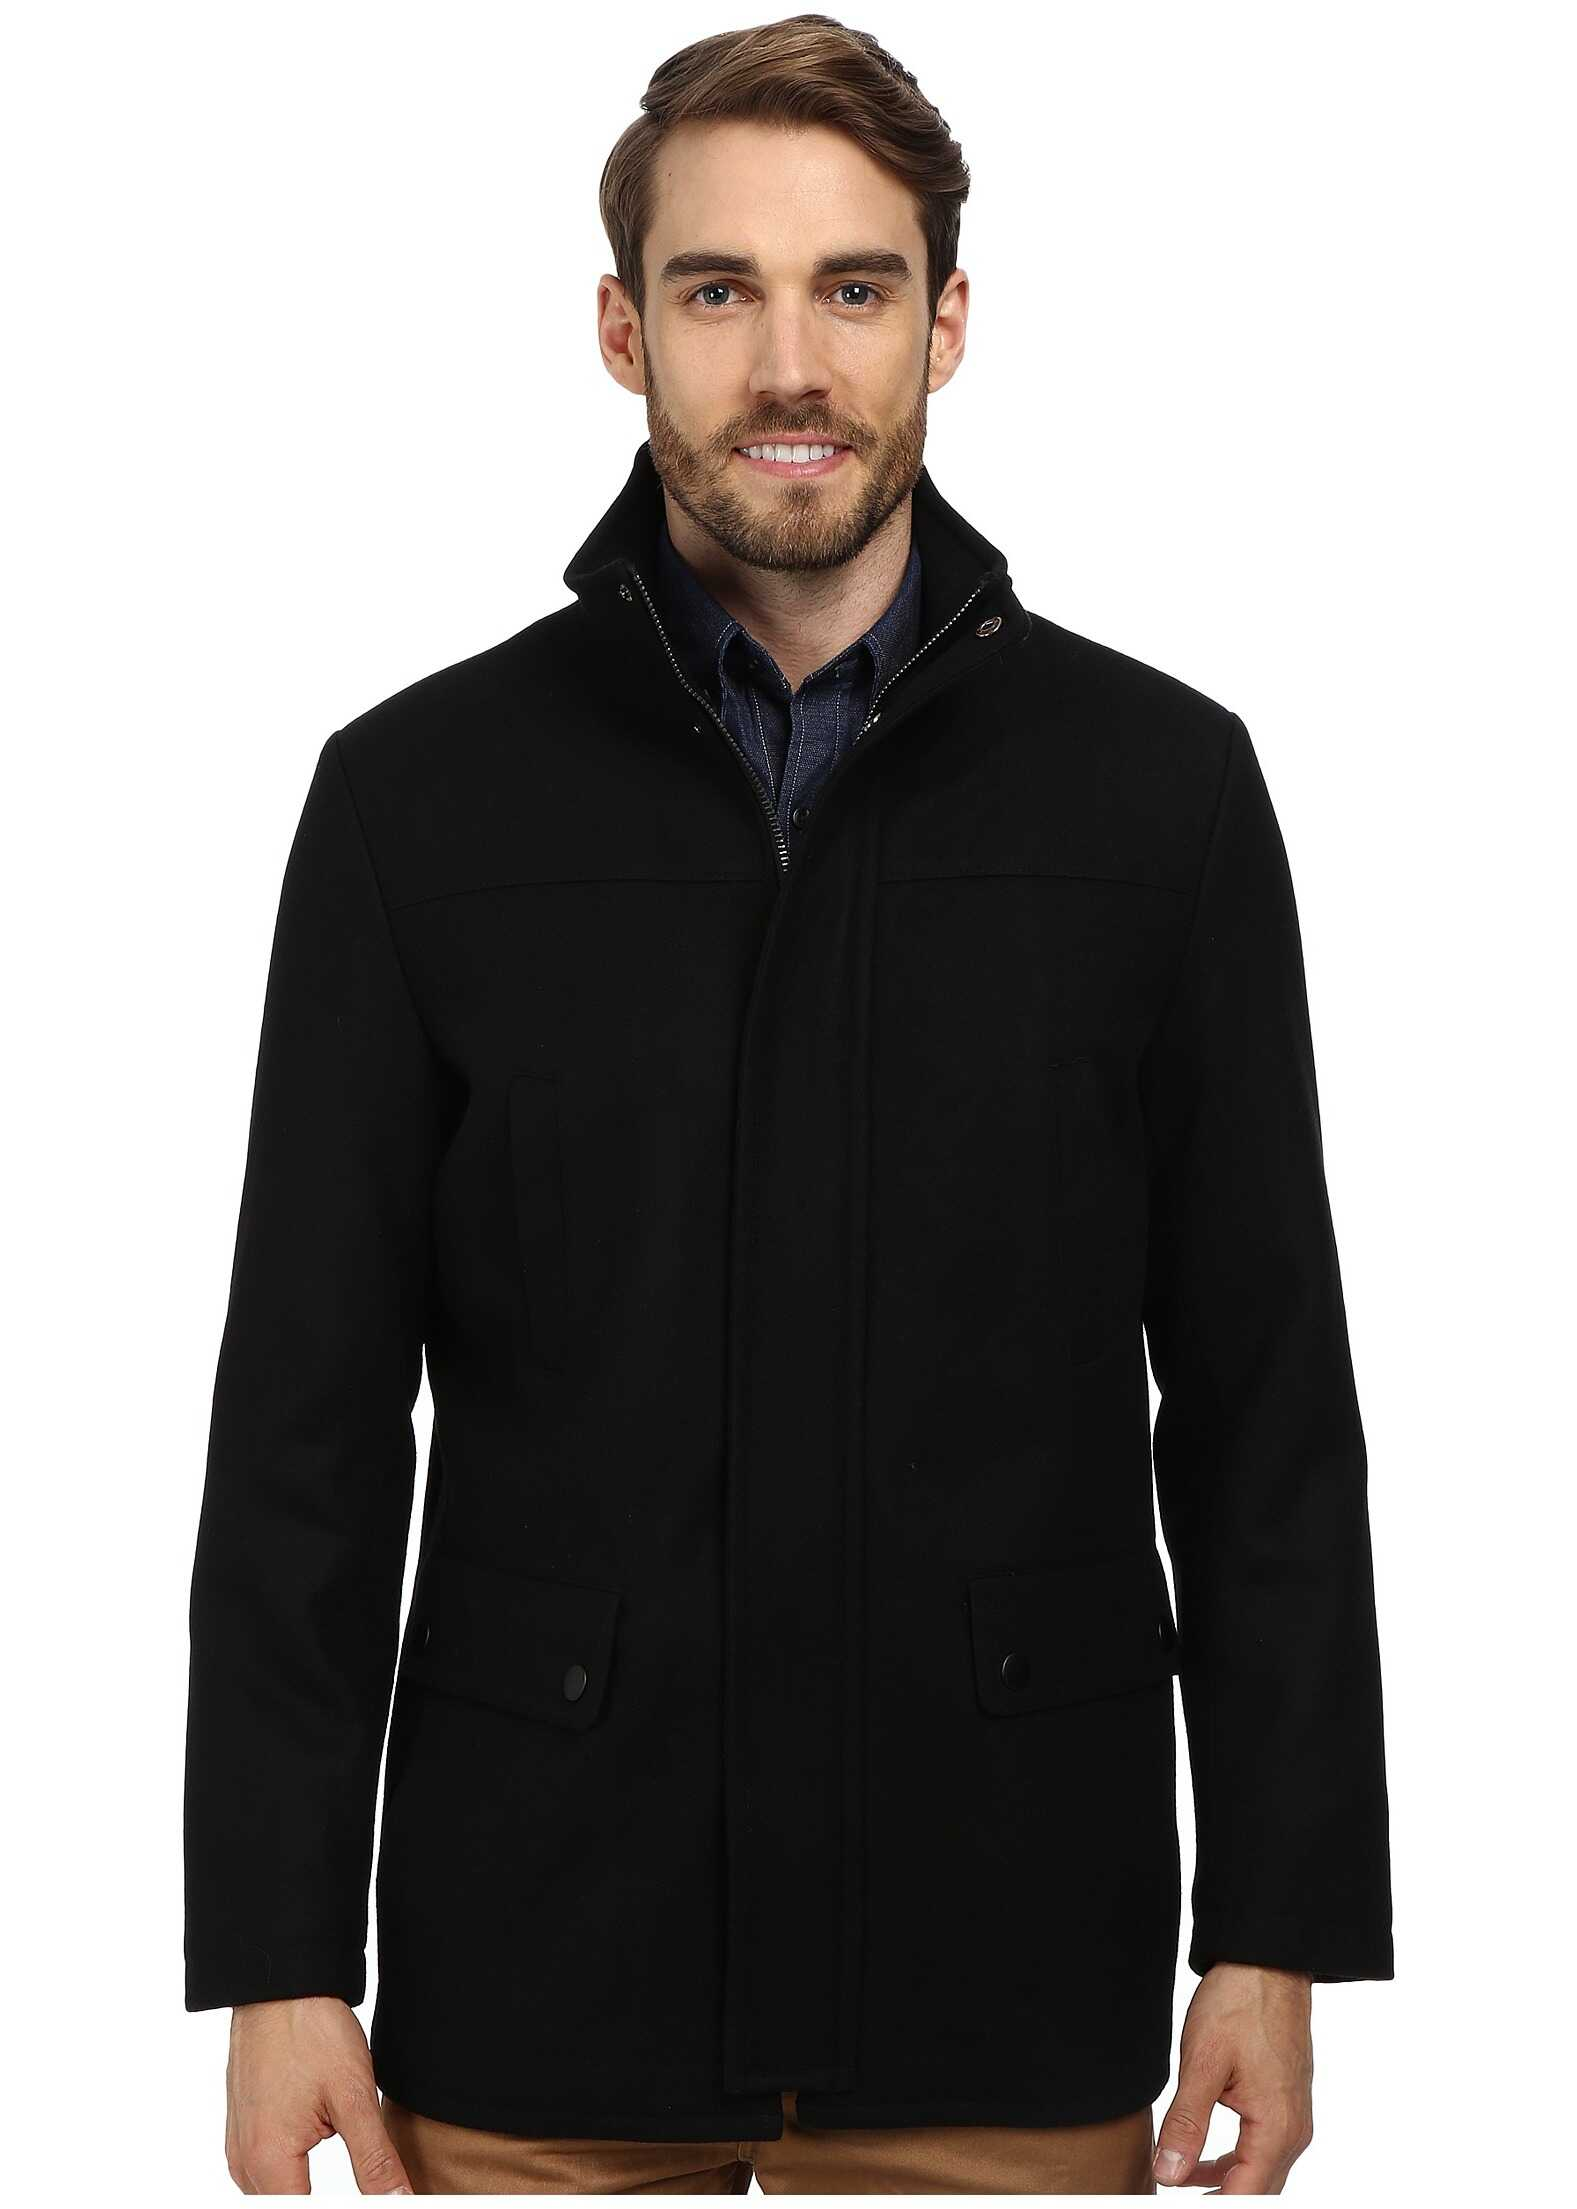 Kenneth Cole Reaction Wool Car Coat Black 1